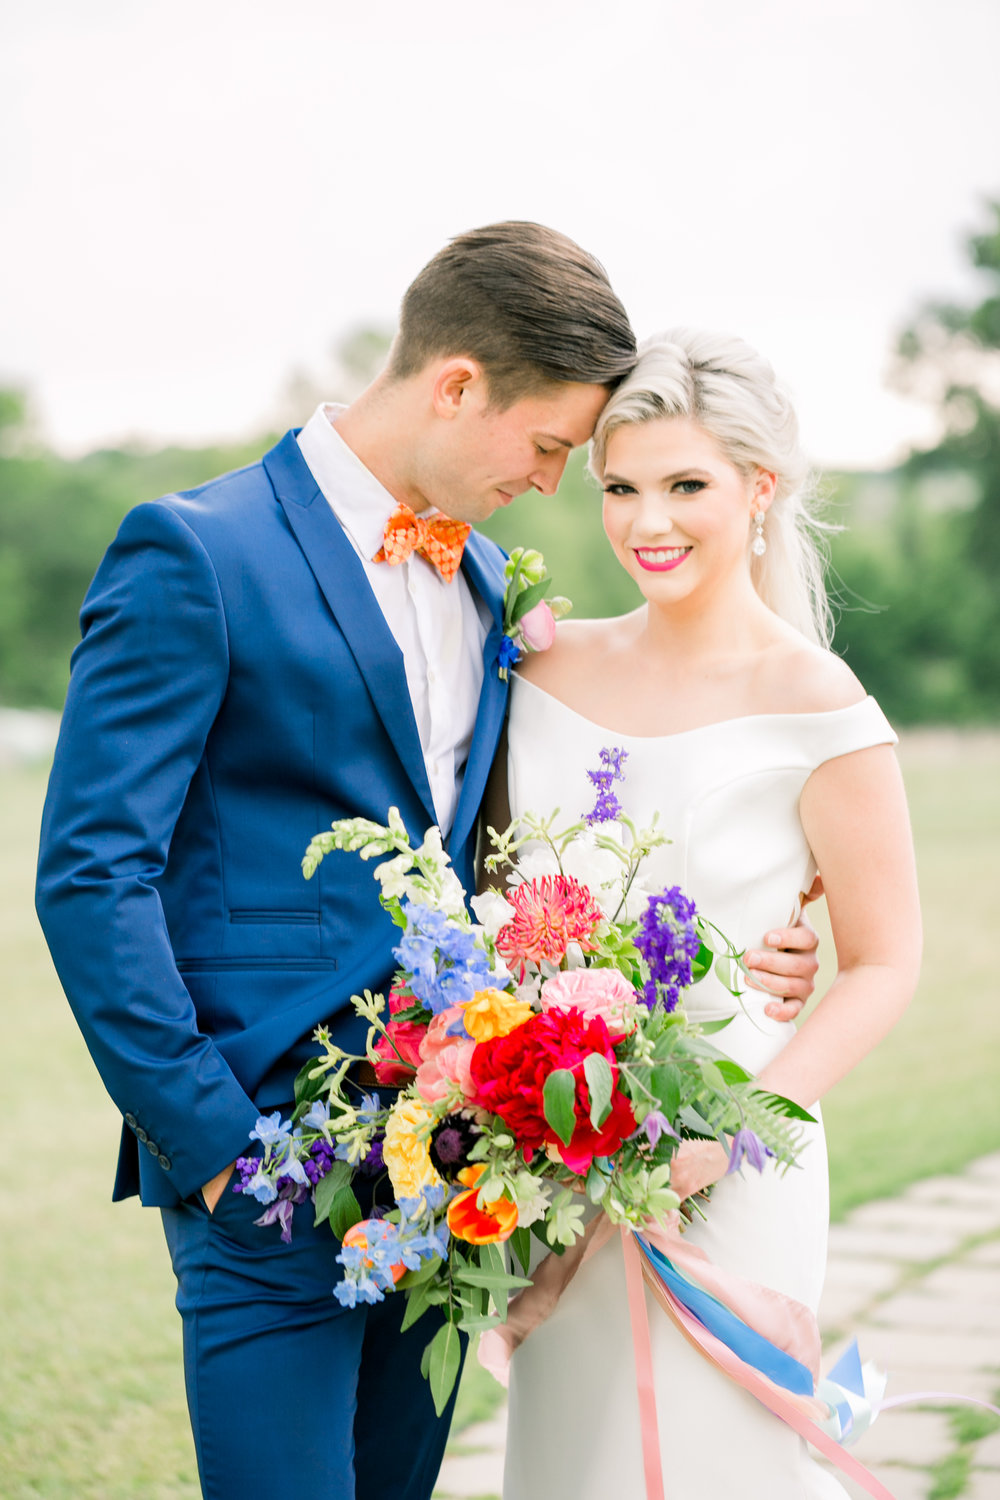 Colorful Wedding Portrait of Bride and Groom